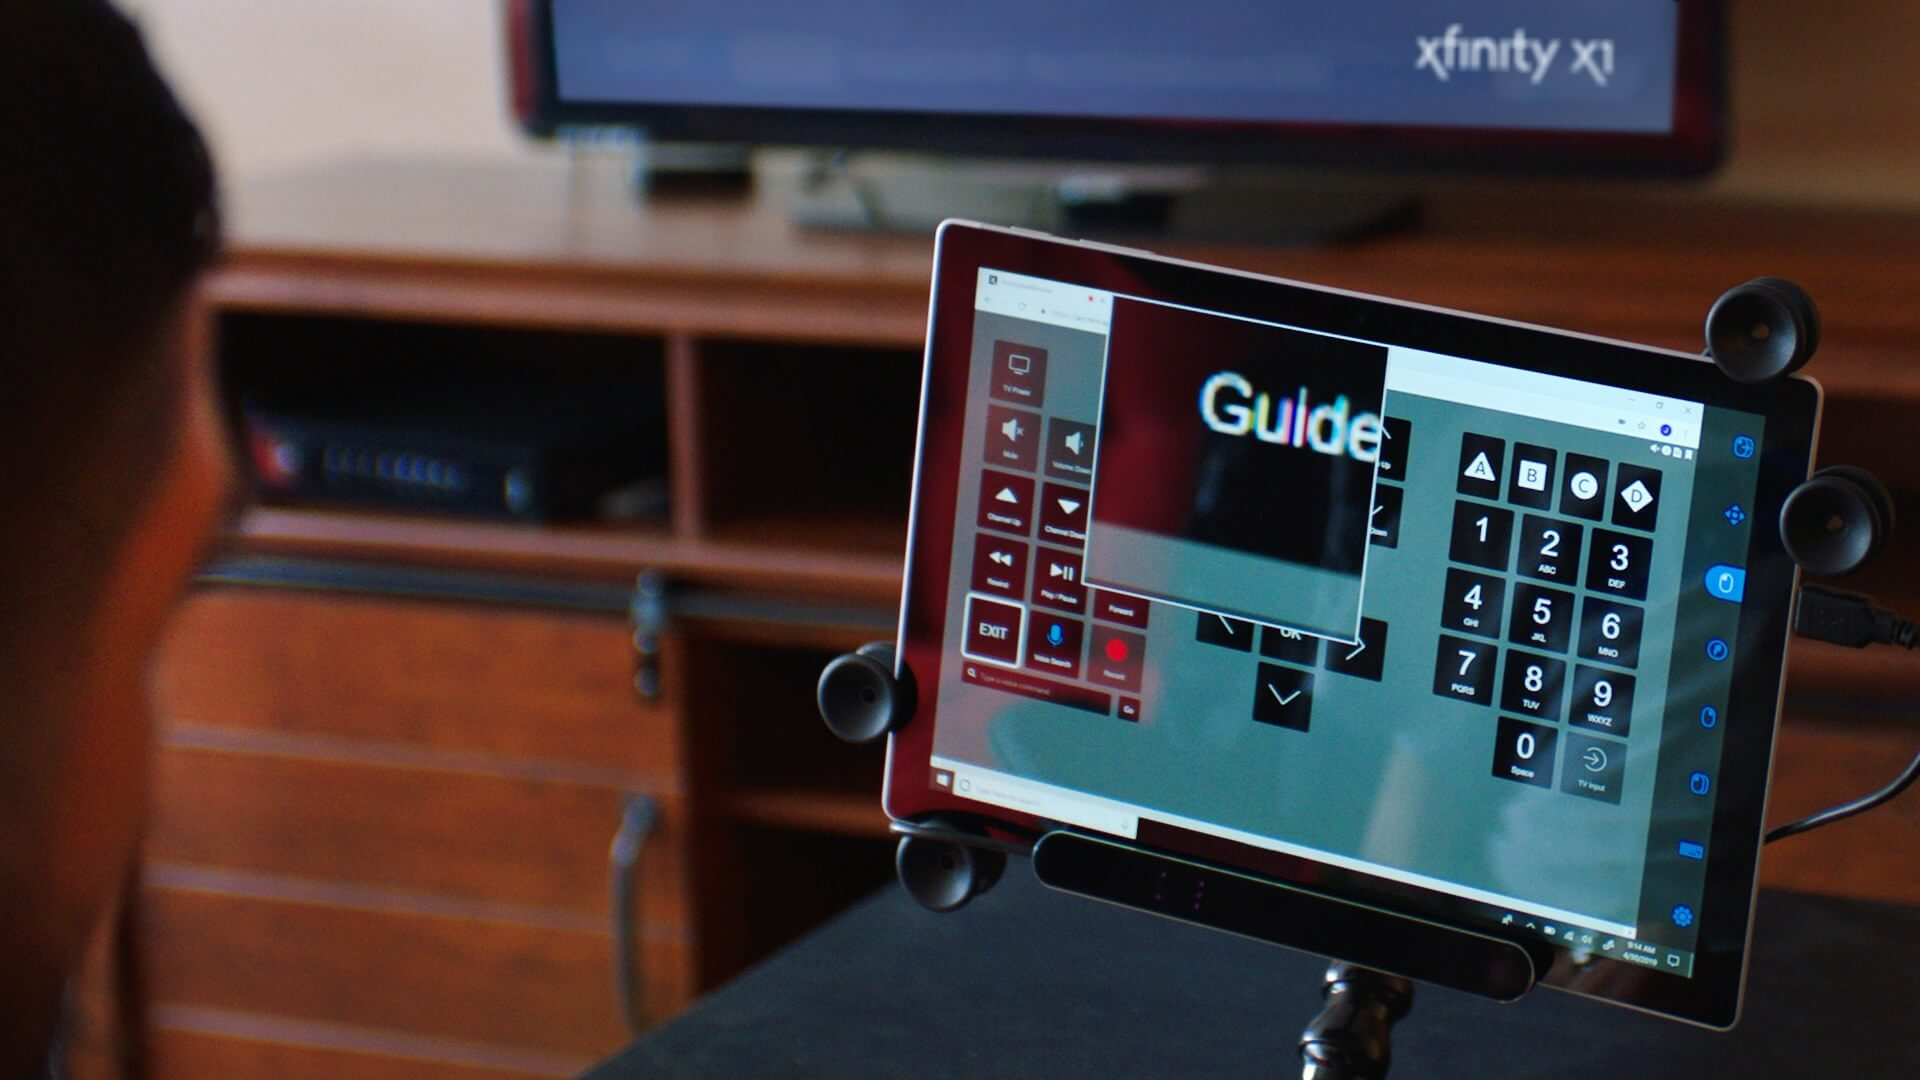 Comcast introduces eye-tracking support to its X1 web remote